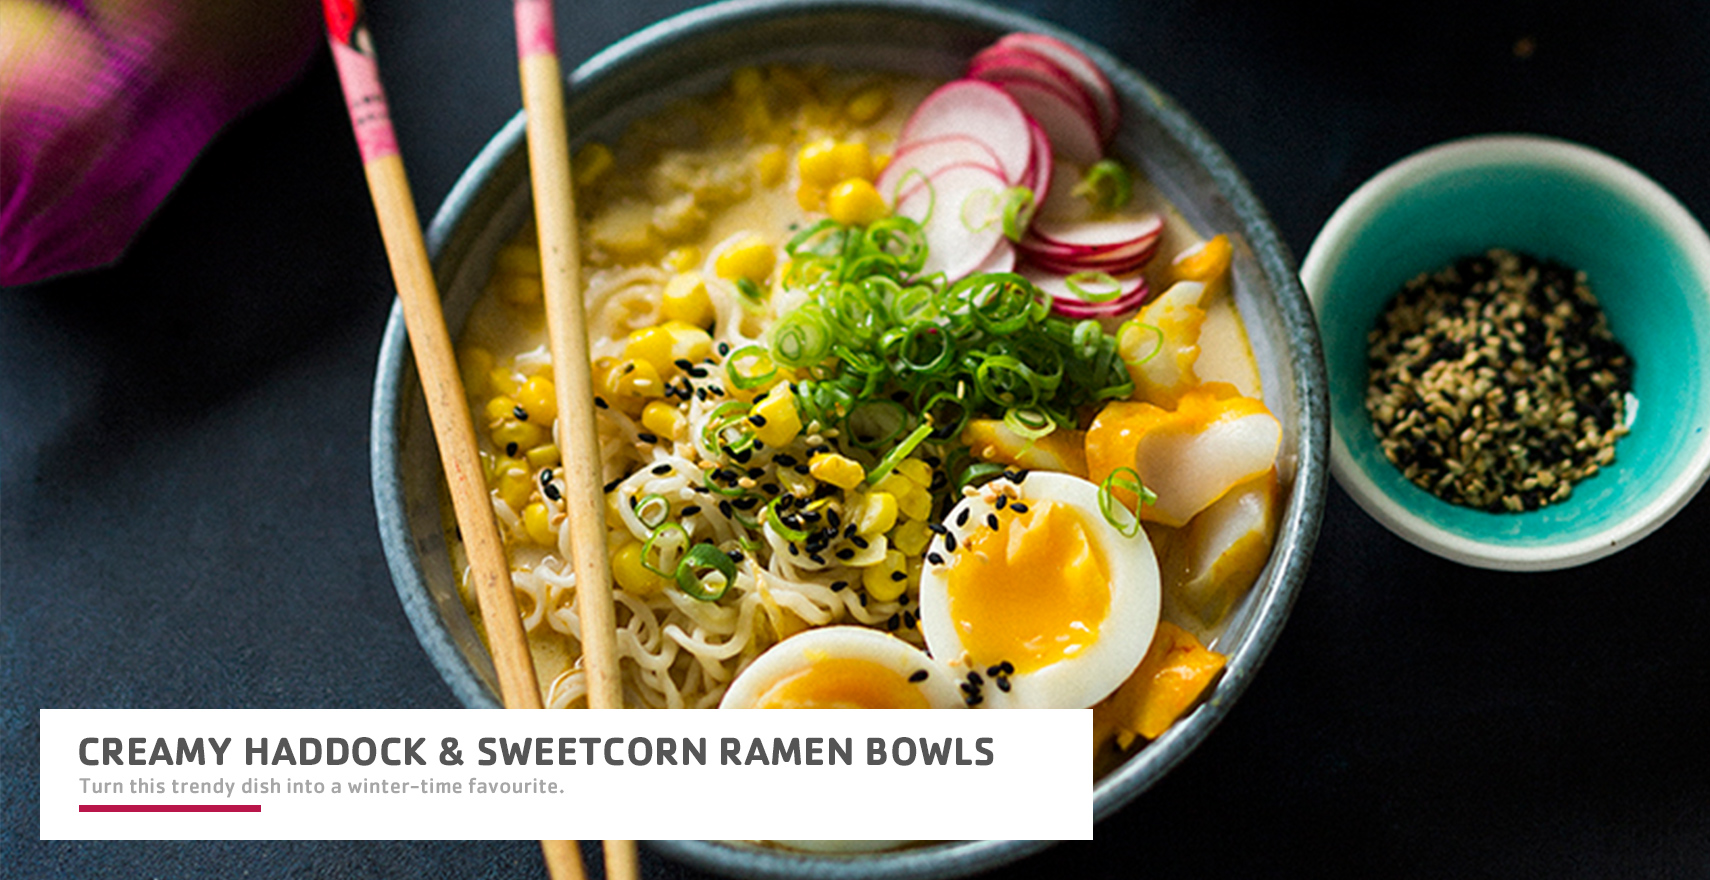 creamy-haddock-and-sweetcorn-ramen-bowls.jpg